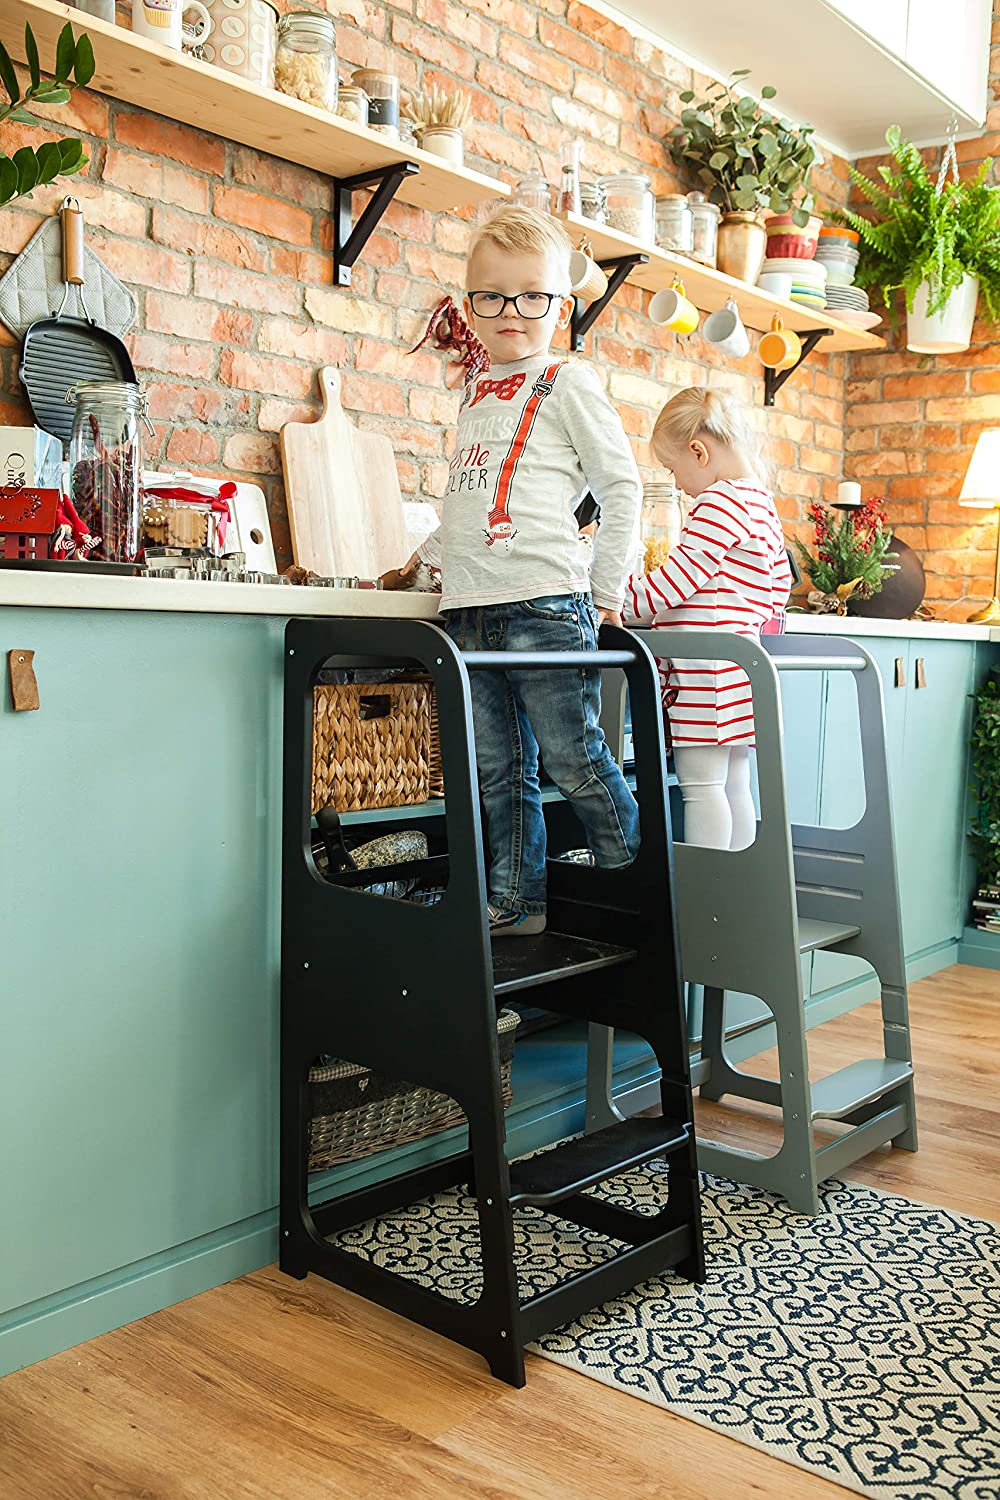 Grey Sweet Home From Wood Kitchen Helper Kitchen stool Safety stool Toddler step stool Kid Step Stool Activity tower Montessori tower Stepping stool